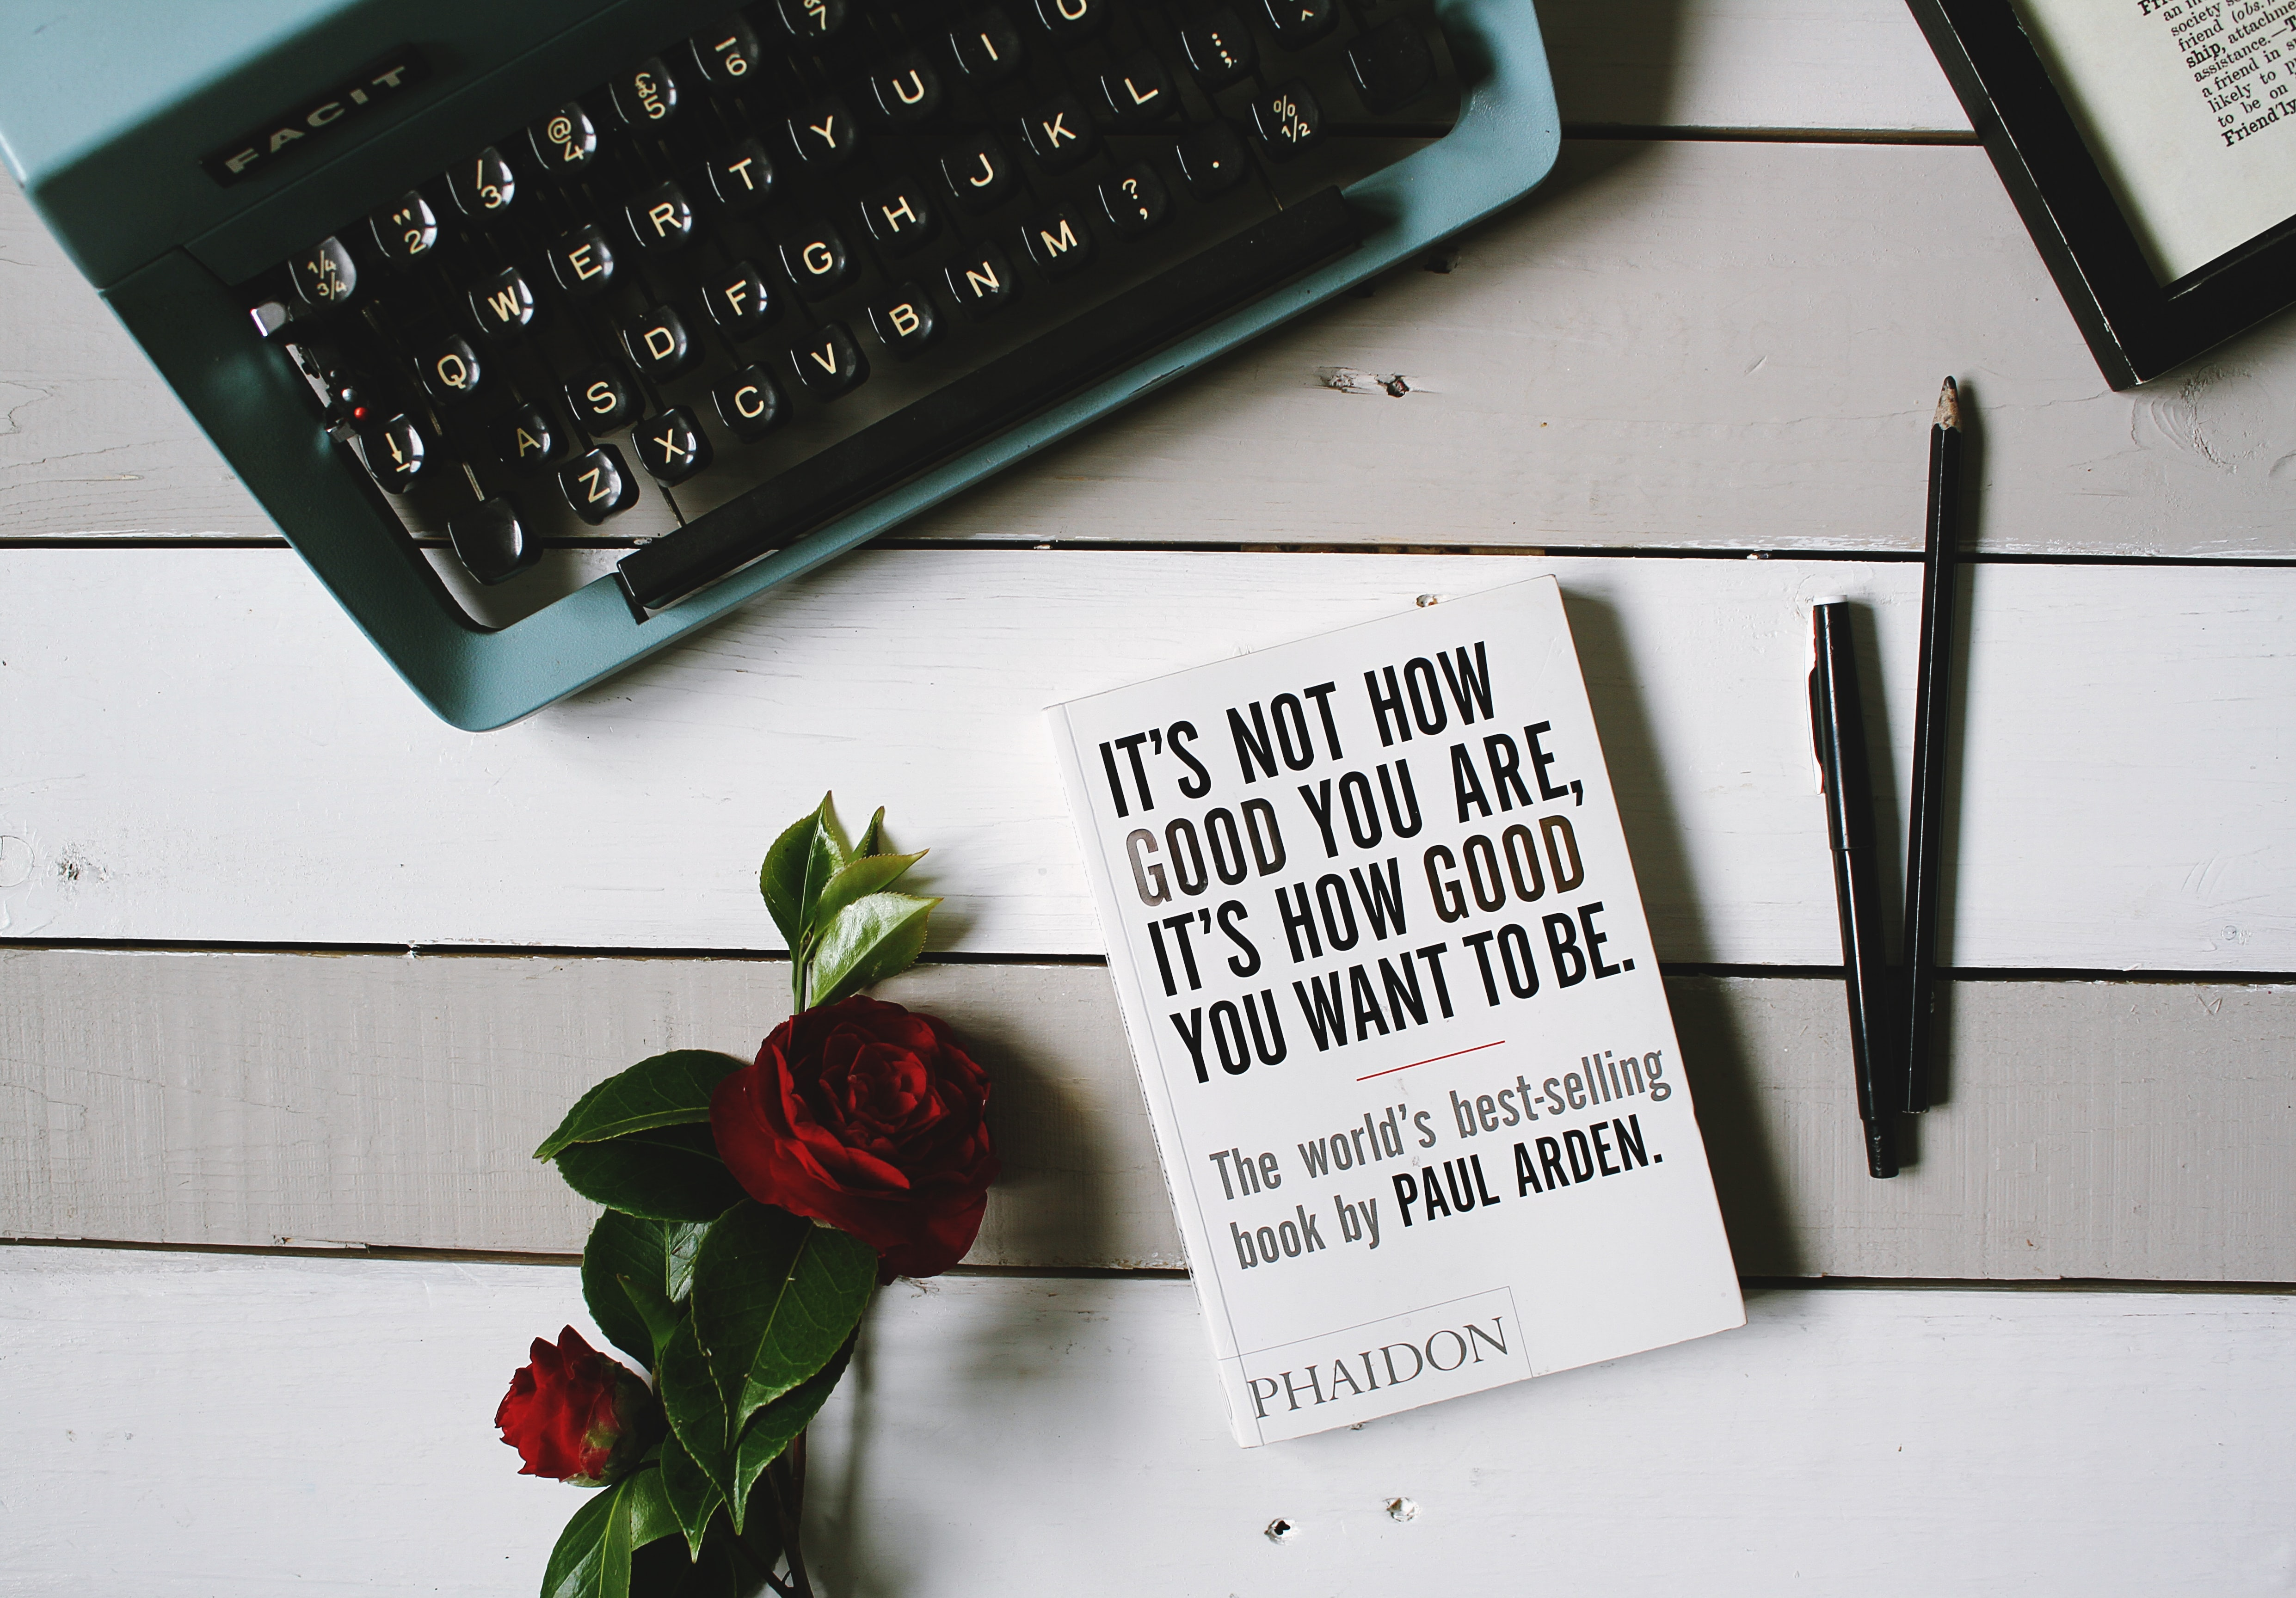 A flatlay image with a keyboard and a motivational message.